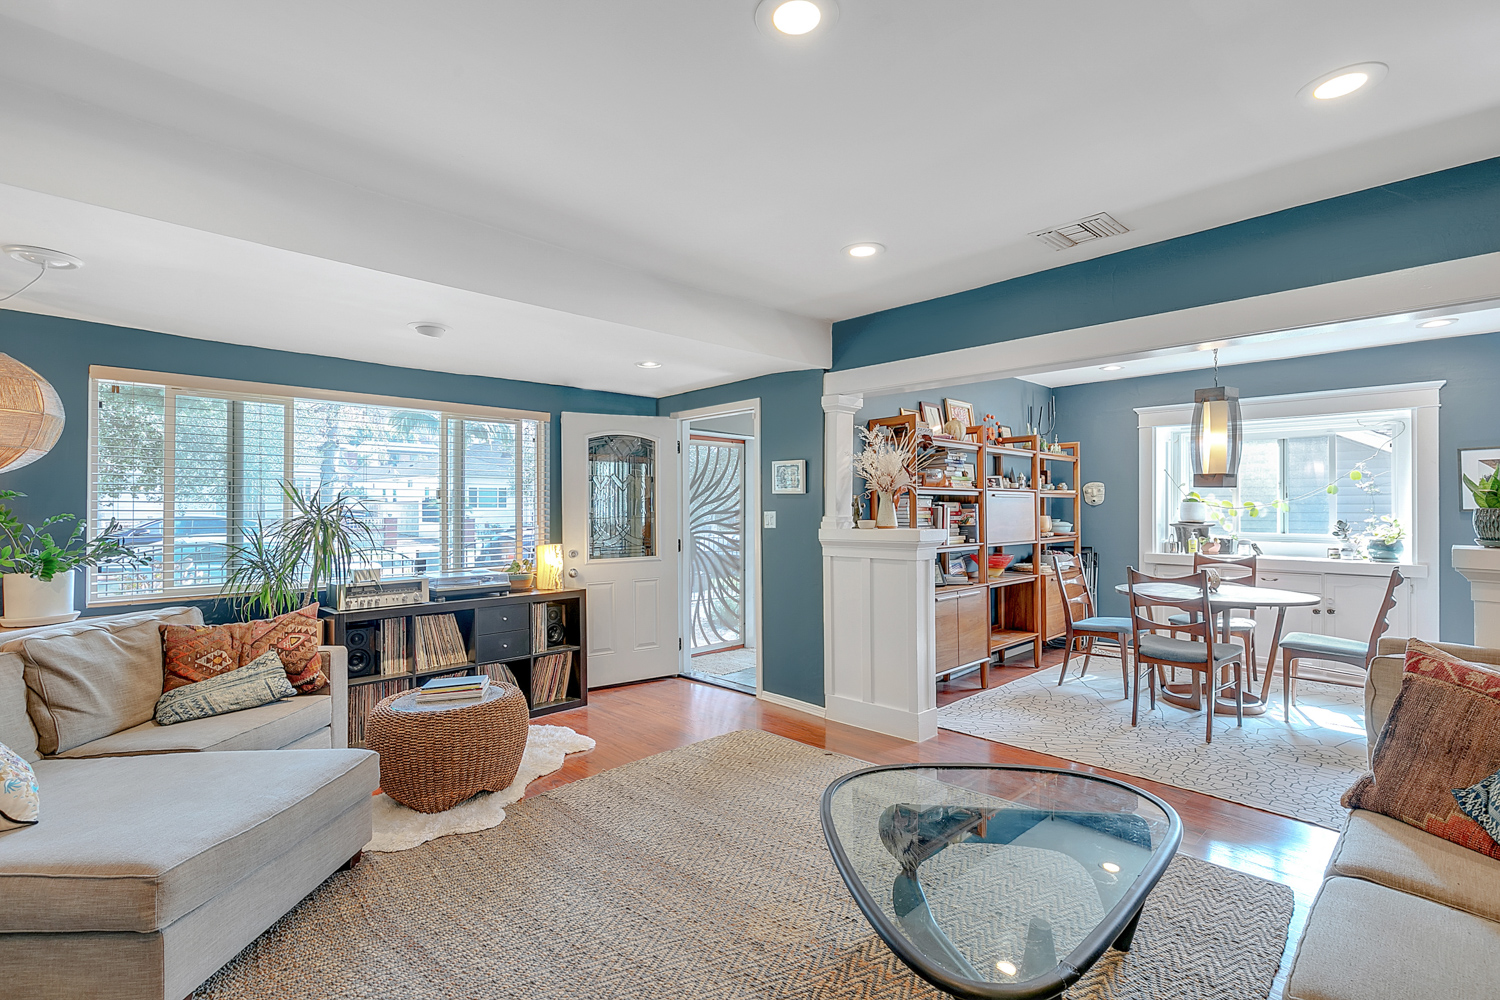 Fabulous Flexible Lease Term Retreat | Highland Park Single Family + Detached Studio | Partially Furnished Or Unfurnished | Front & Backyard | Parking & Utilities Included!